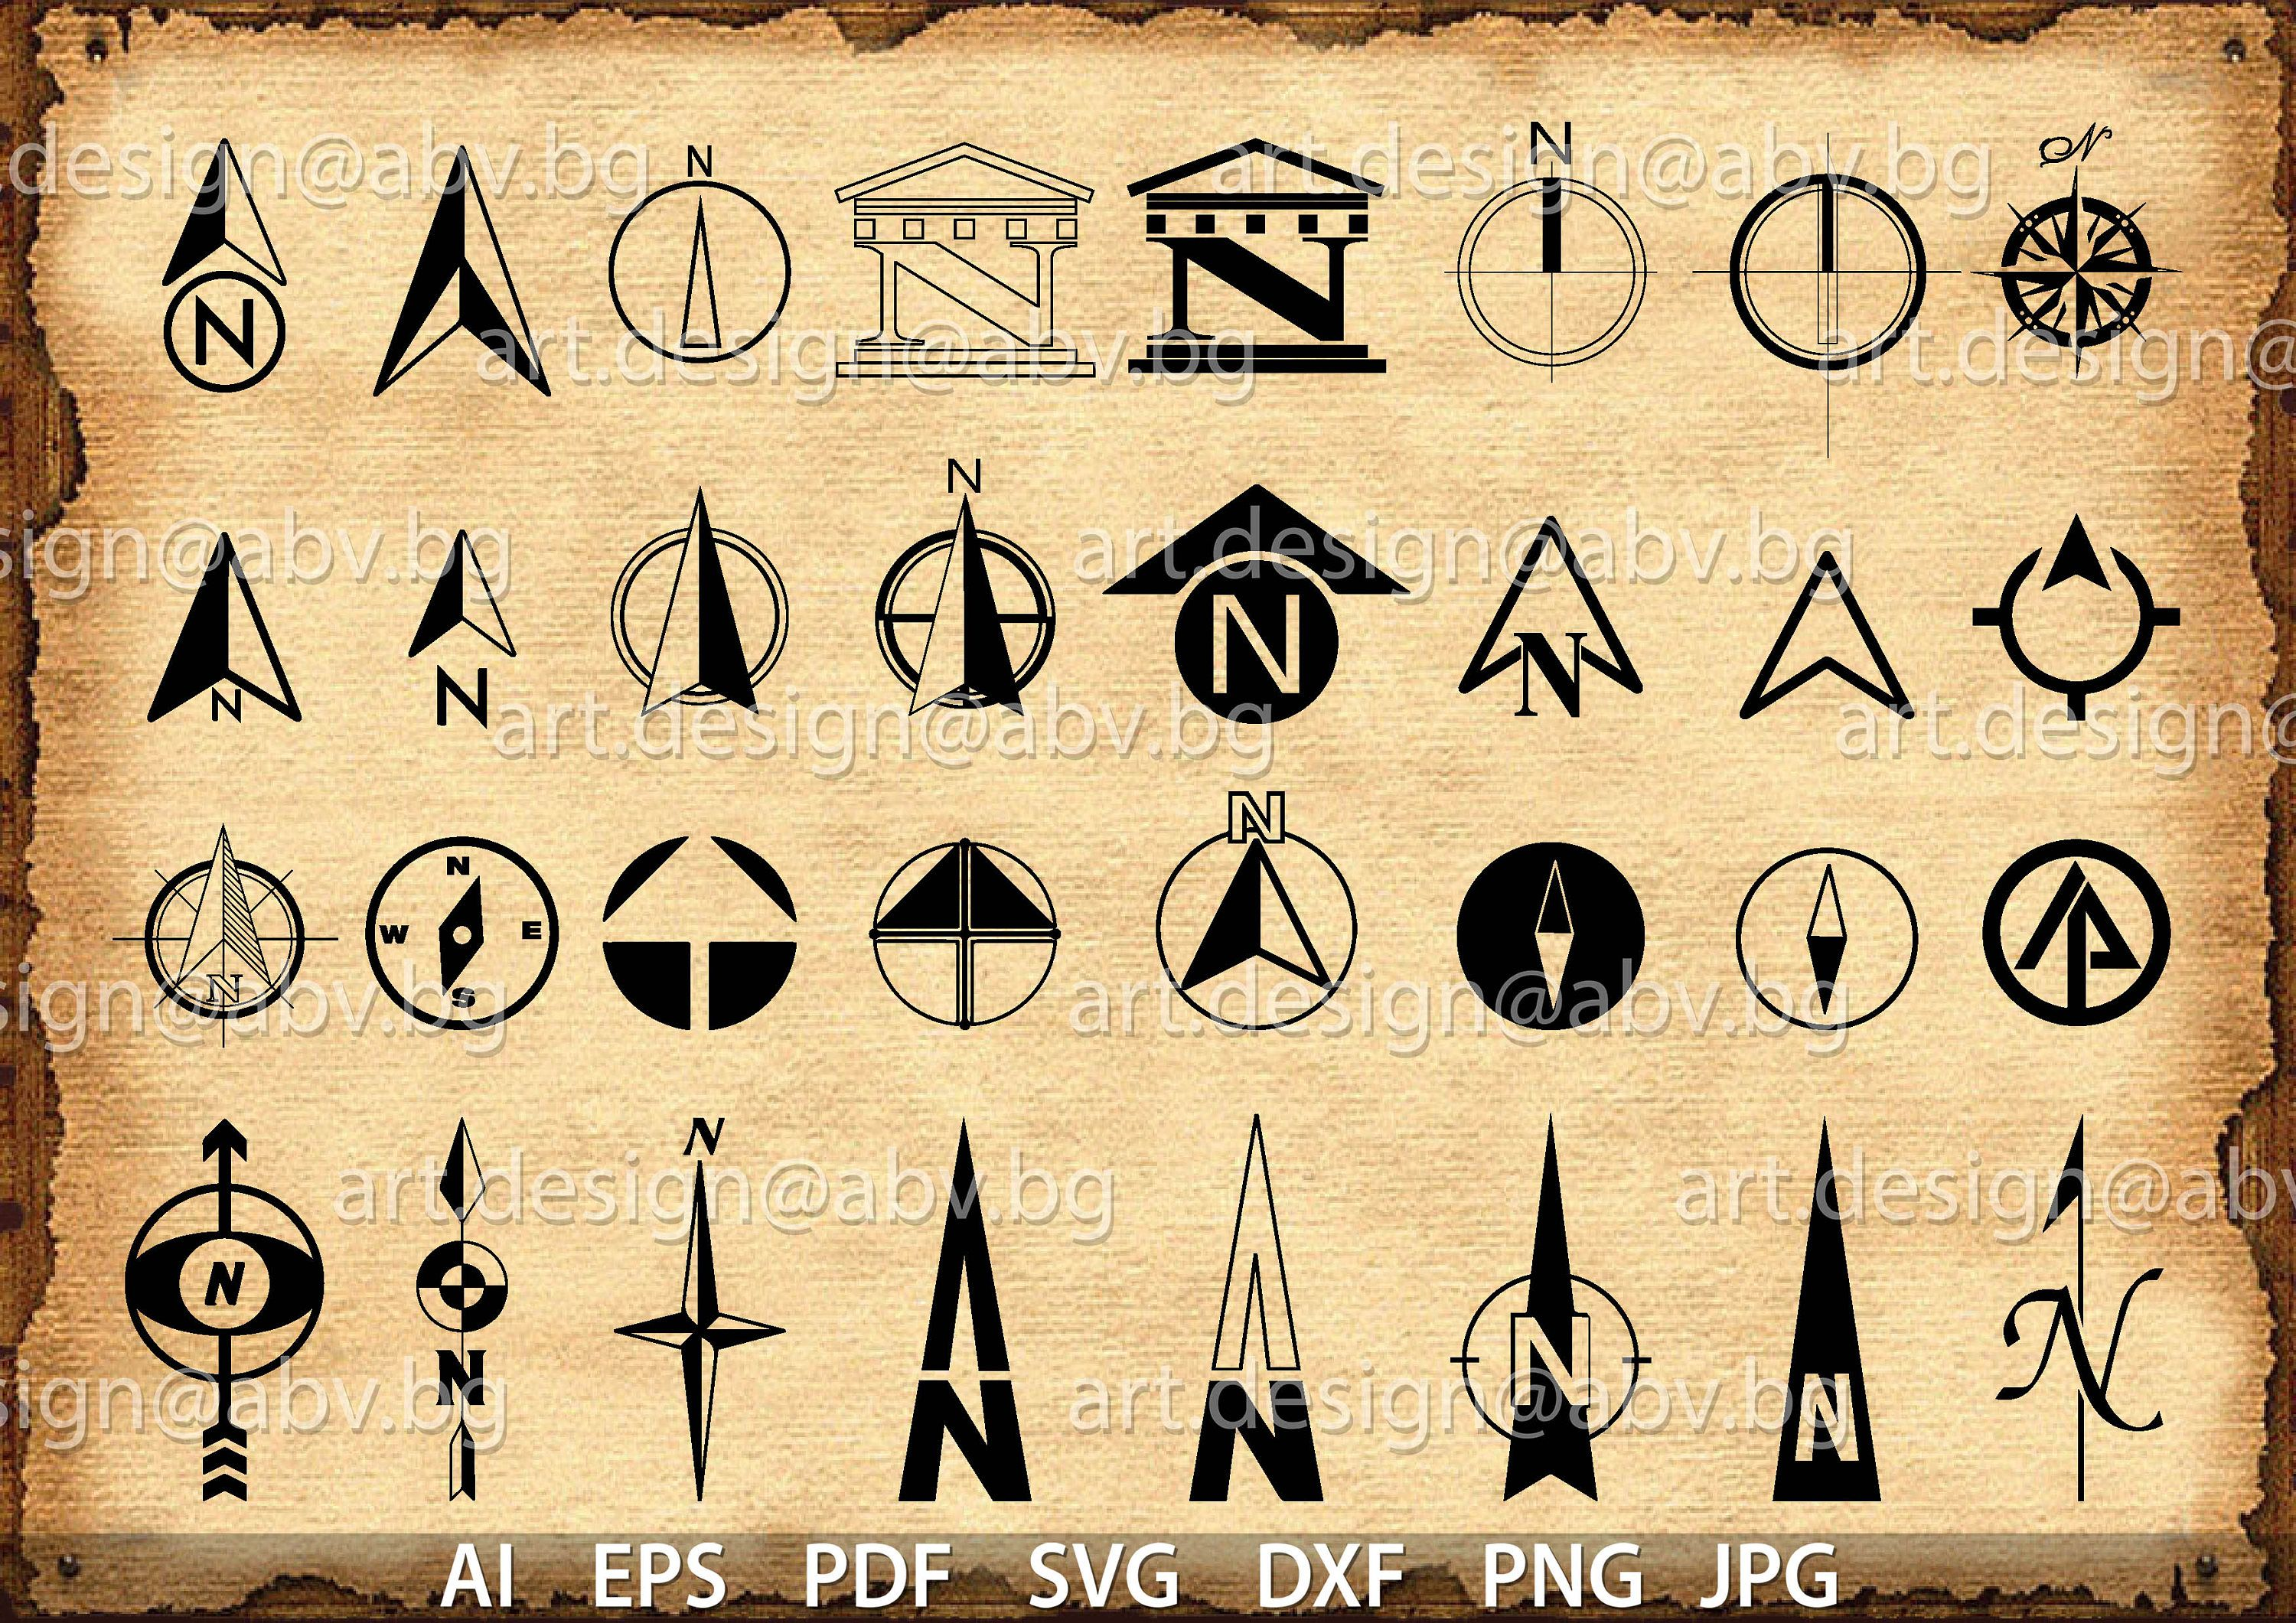 Vector 32 North Arrows Ai Eps Svg Dxf Pdf Png Jpg Download Digital Graphical Discount Couponsjpg In 2021 Graphic Dxf Vector